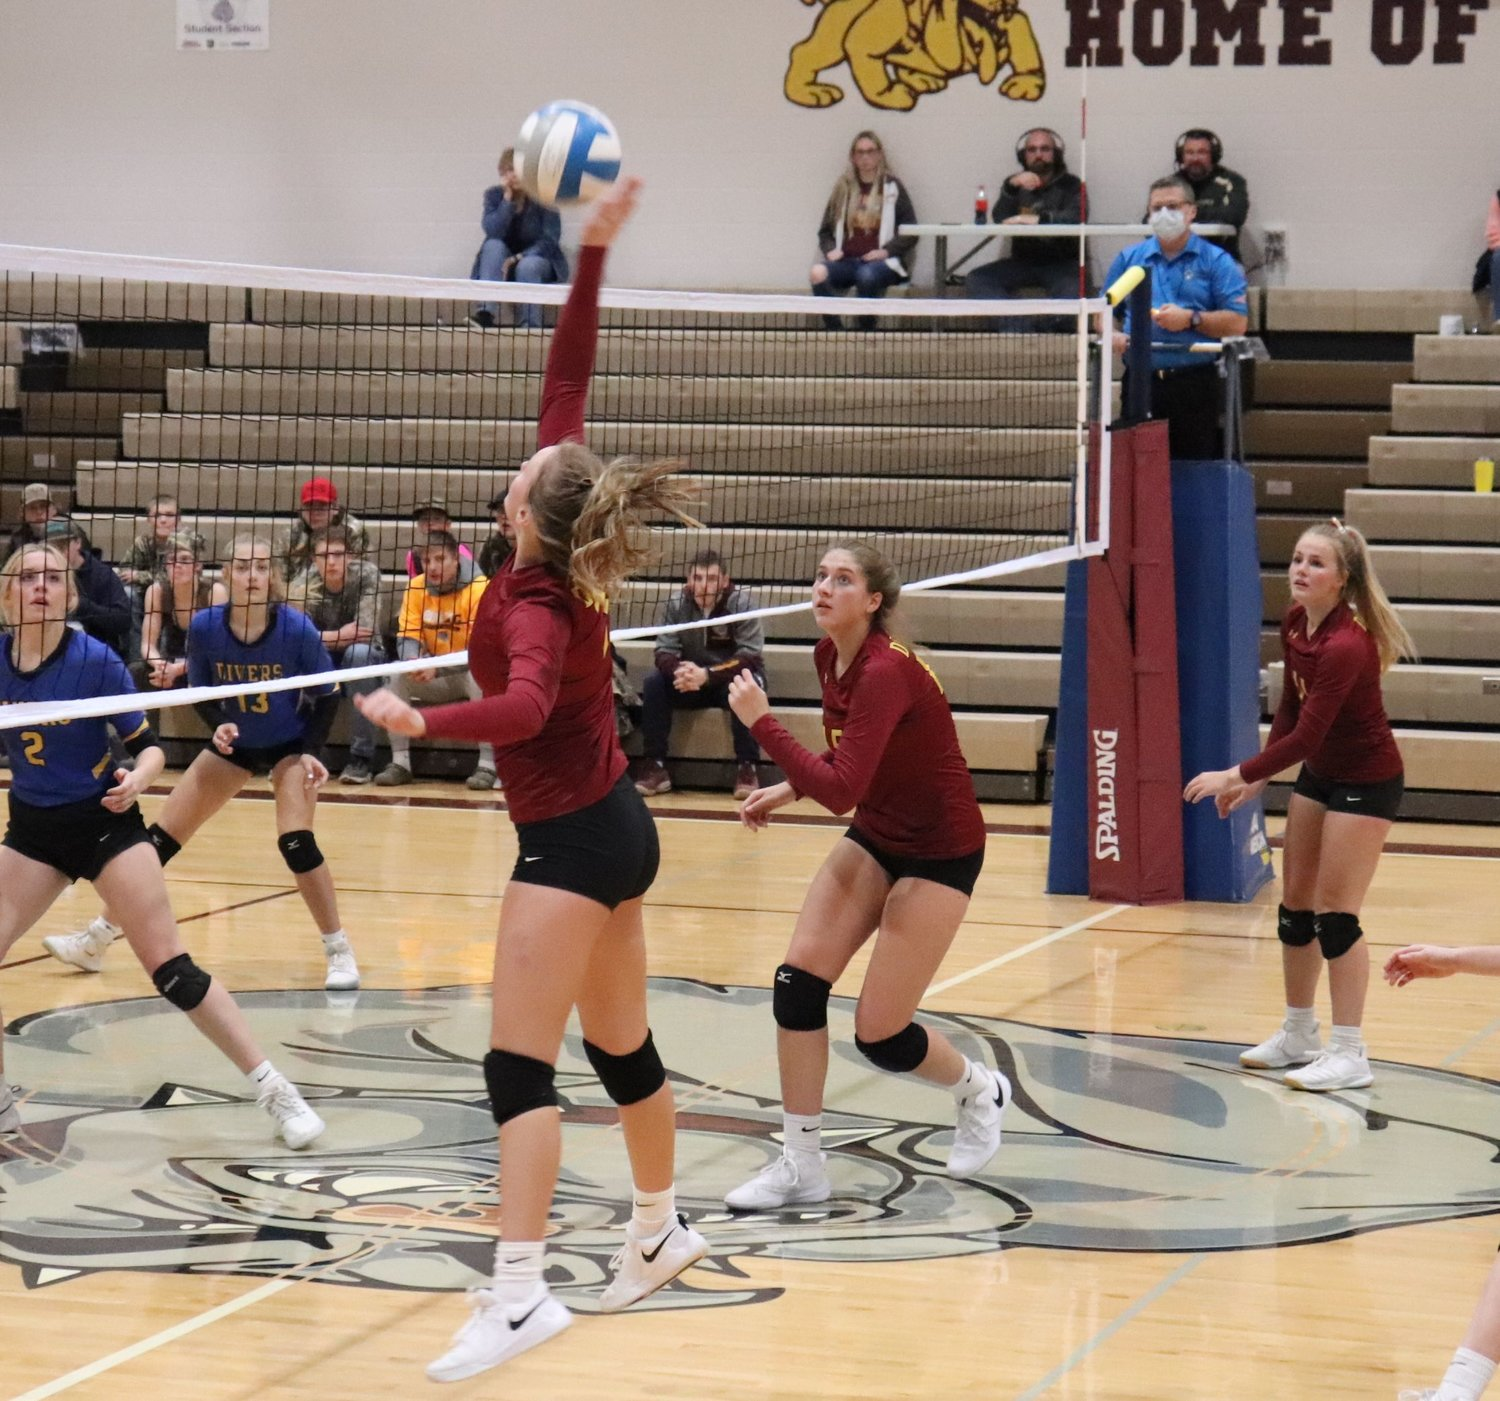 De Smet goes up for a spike against the Divers during the first round of districts.